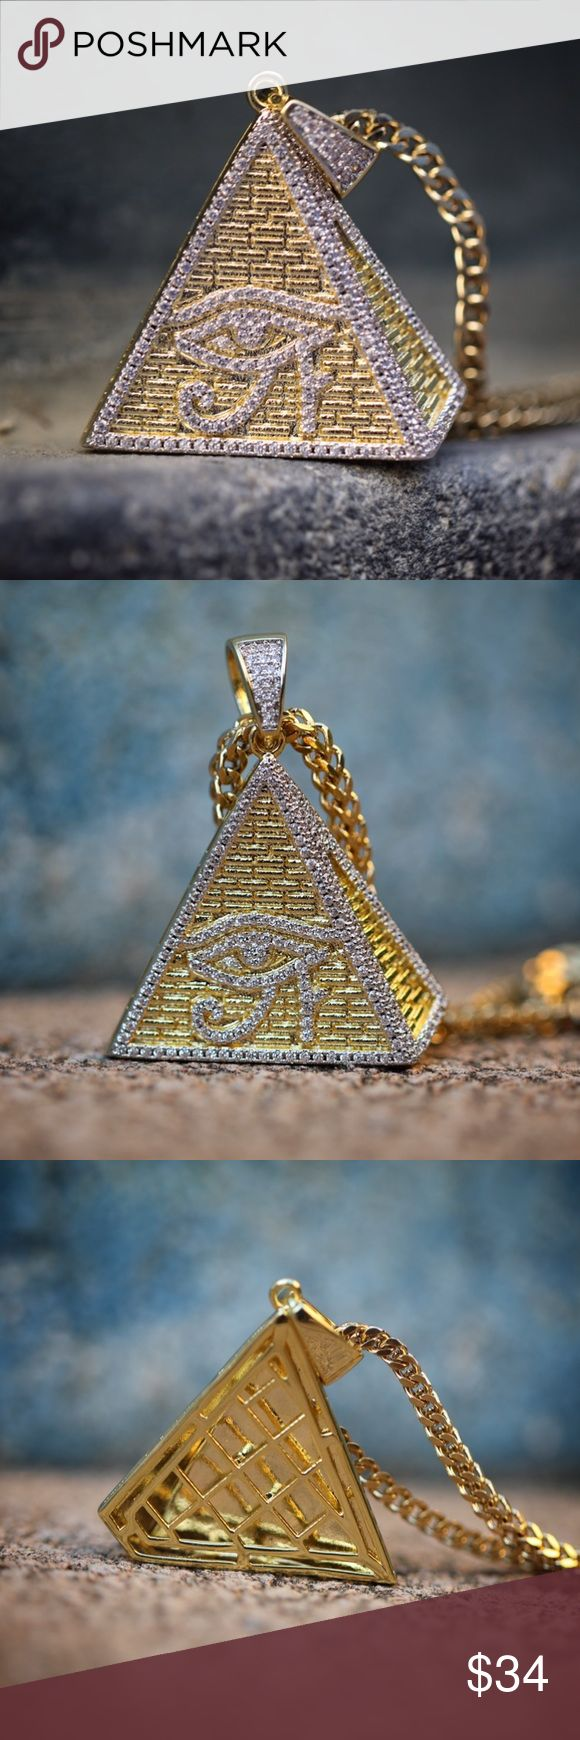 Egyptian Pyramid Eye Pendant With Franco Chain Men's Hip Hip Gold Egyptian Pyramid Eye Pendant With Franco Chain  Chain is made of 316 stainless steel with a 14k gold plating on top.  Size is 40mm in length.  Iced out with white simulated diamonds.  Comes with a 2.5mm width 22,24 or 26 inch 14k gold plated 316 stainless steel franco chain. Tsv Jewelers Accessories Jewelry